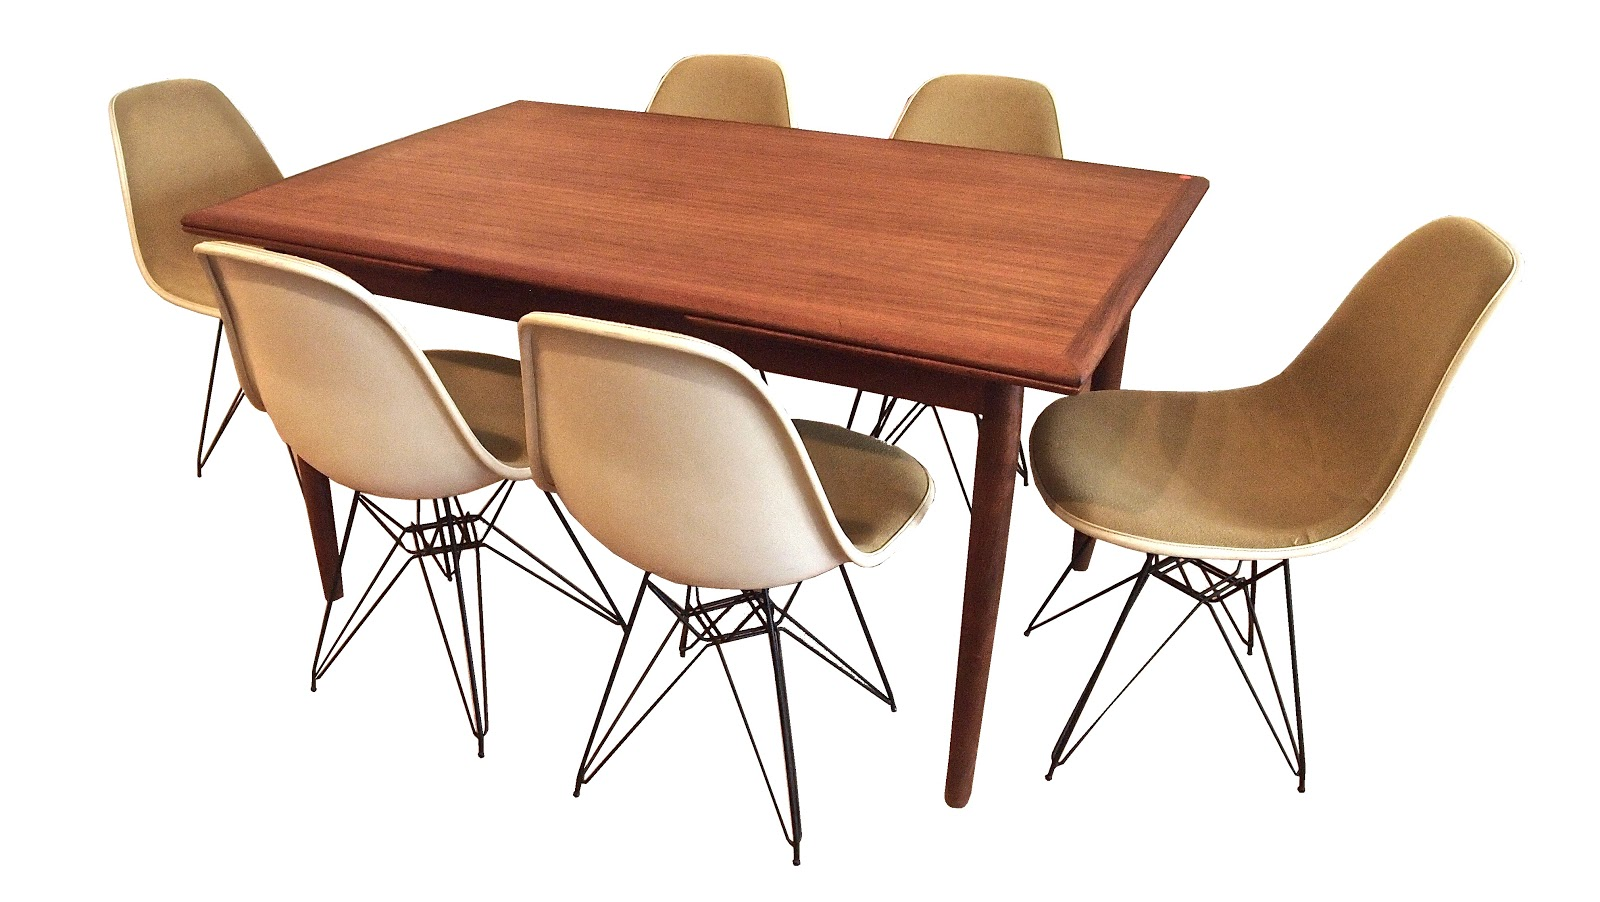 Dining chairs showroom montr al - Chaises eames montreal ...